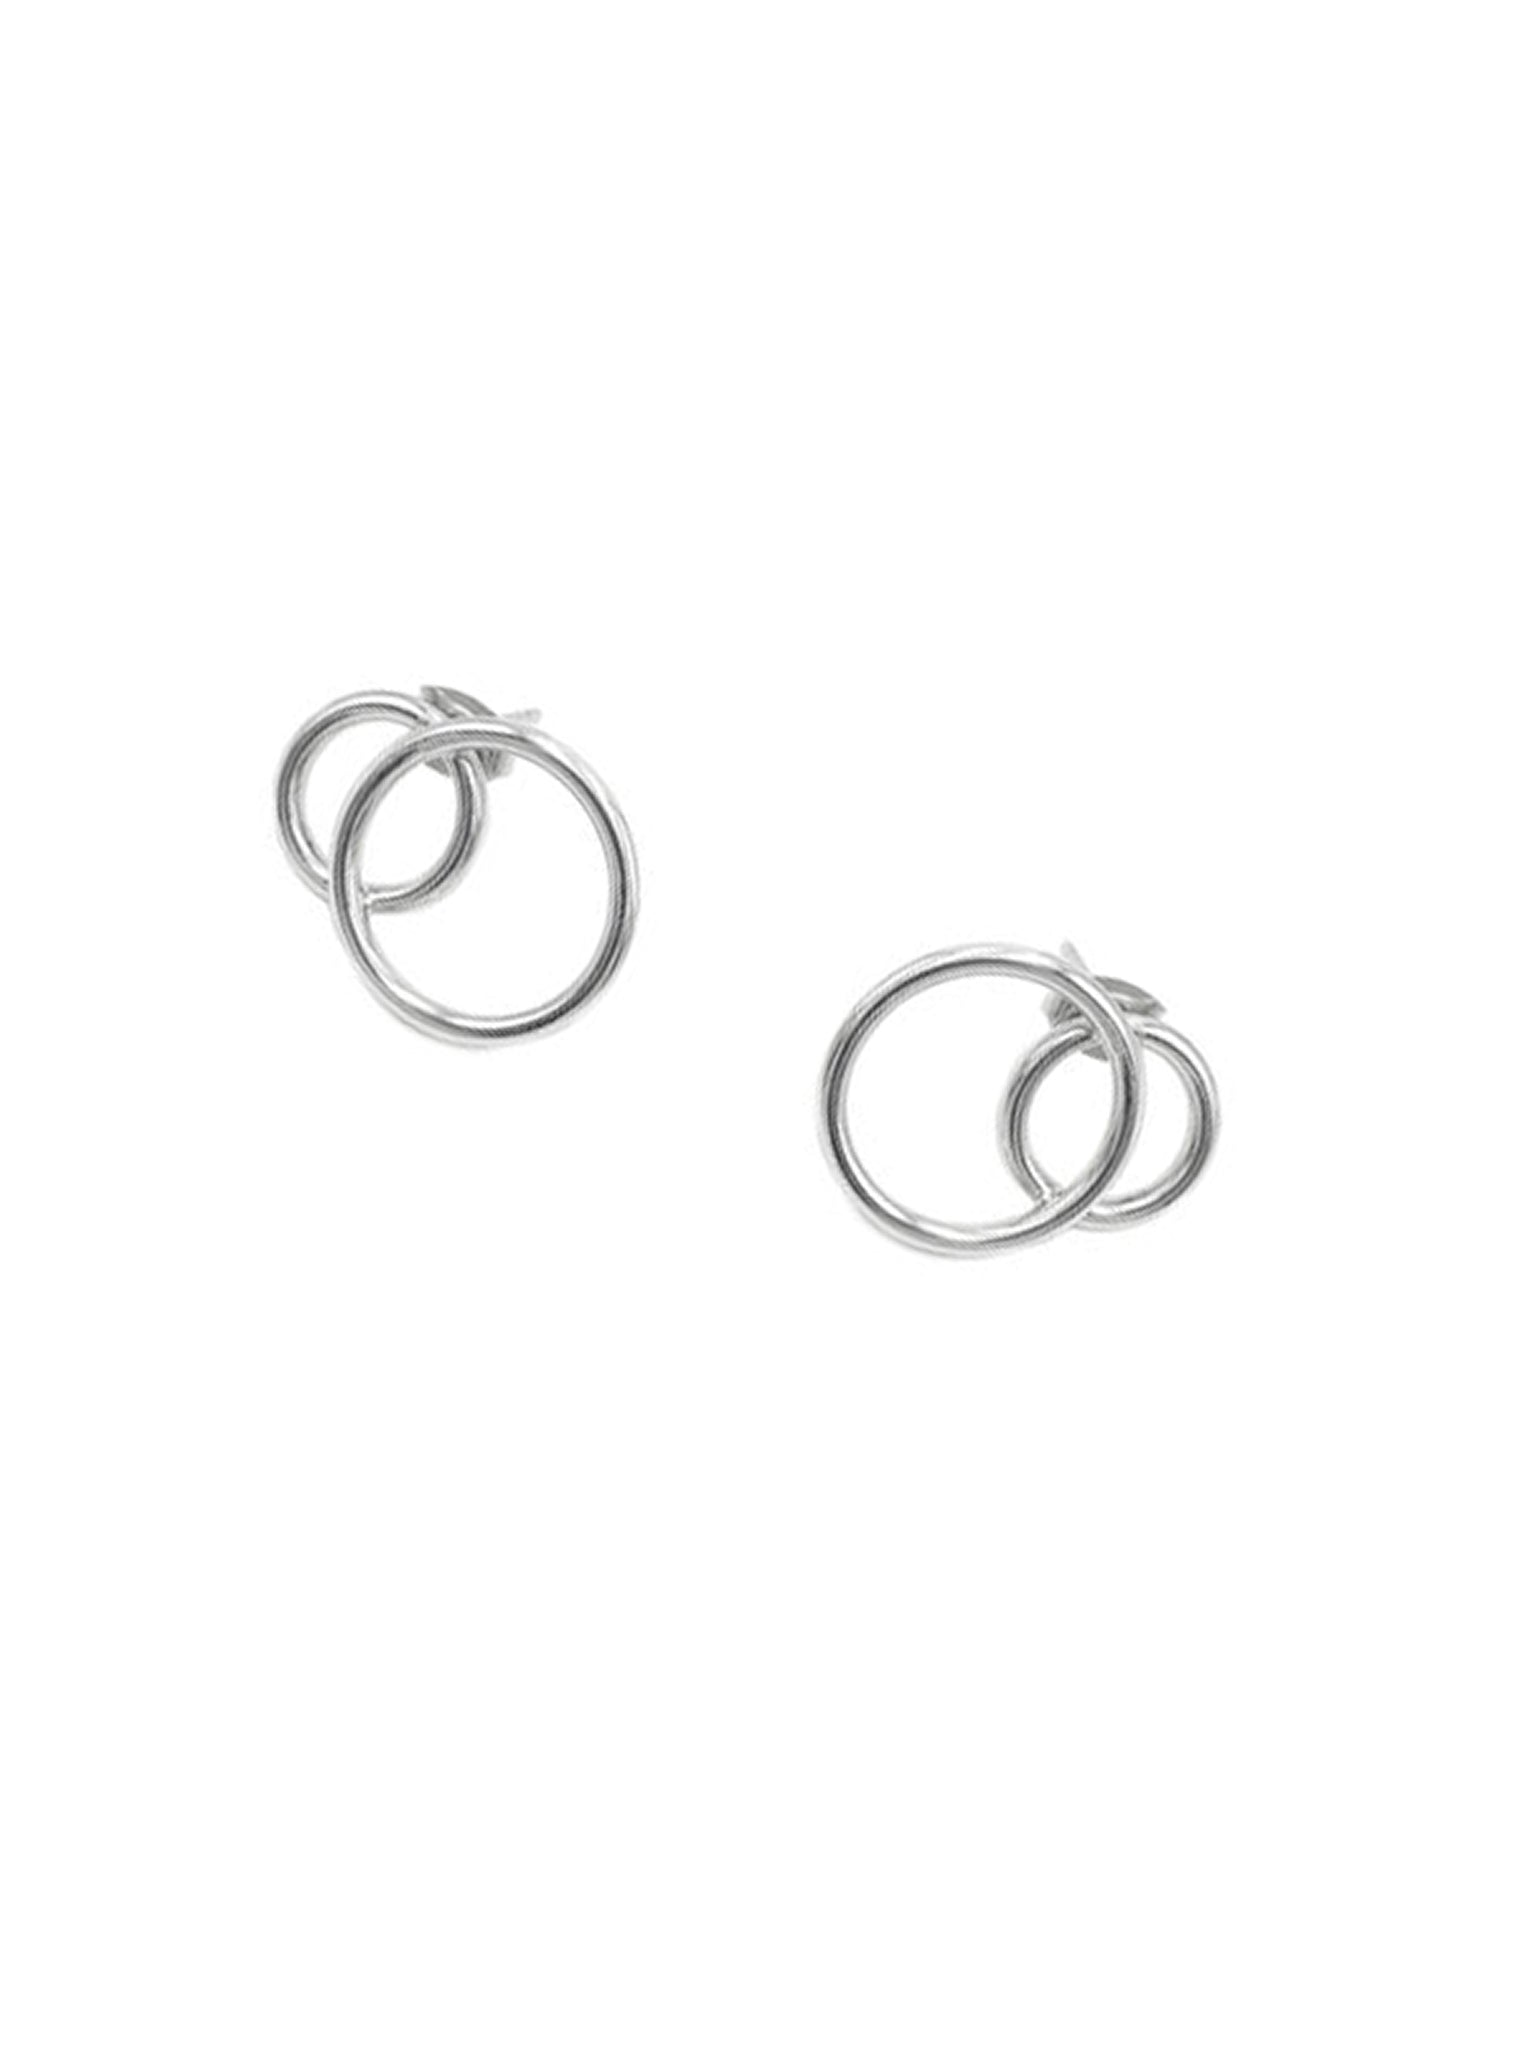 Justine Clenquet Gale earrings palladium